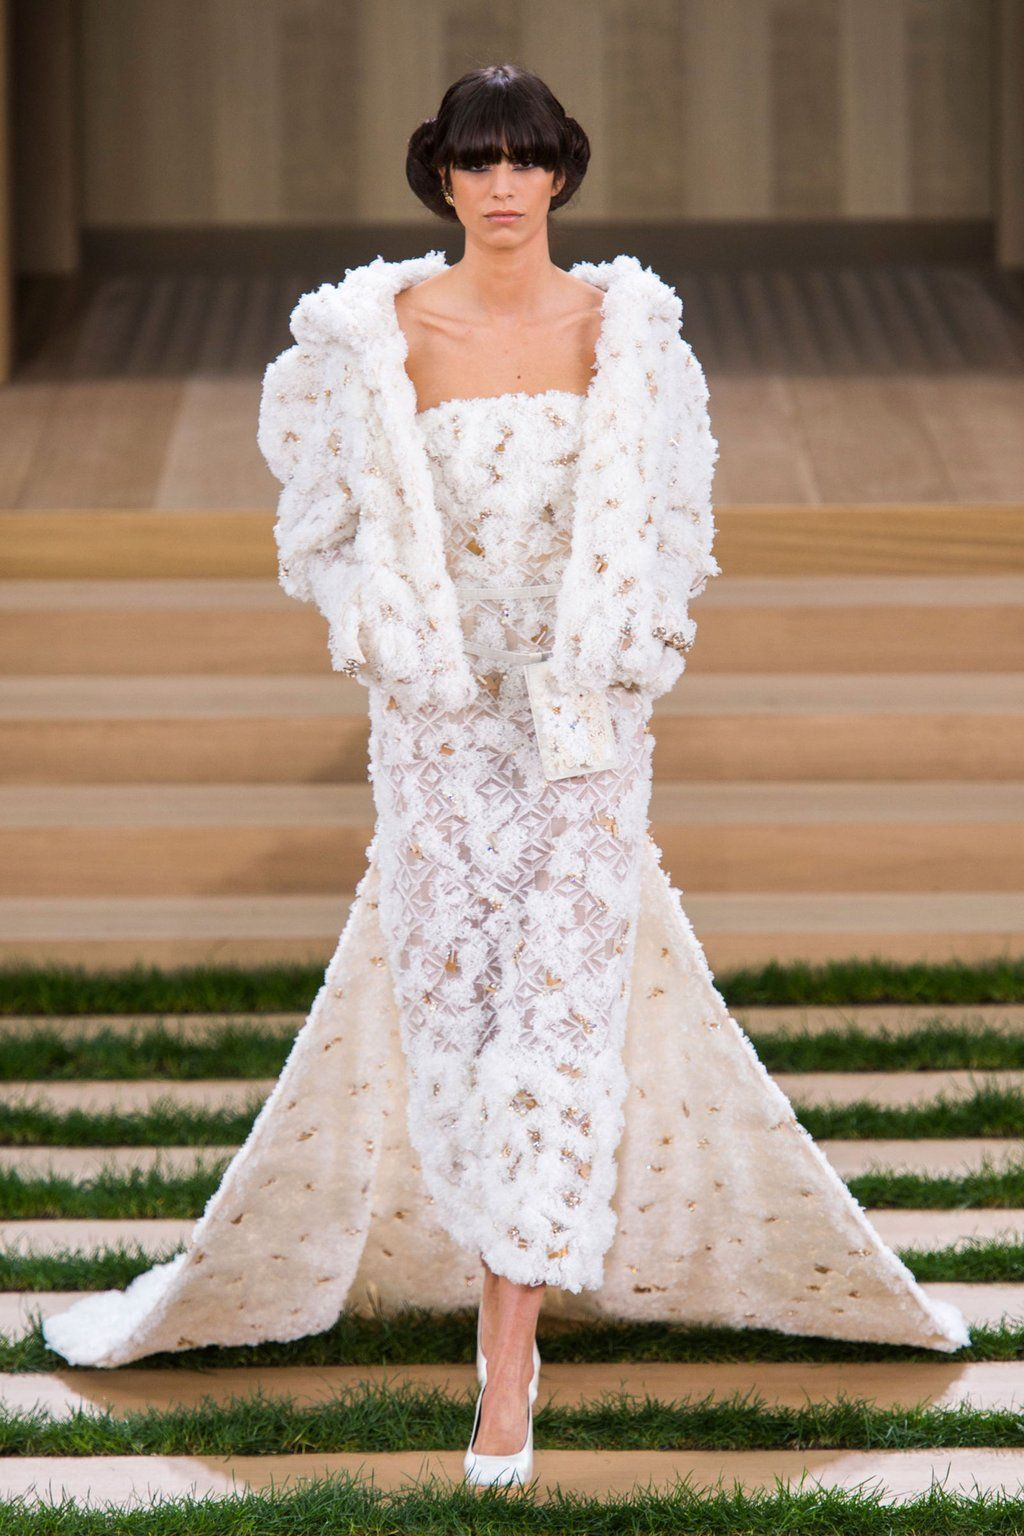 The best looks from this morning's CHANEL couture showwhich is your favorite?  https://t.co/WTqNbnMy5f https://t.co/UbrDqllT2T